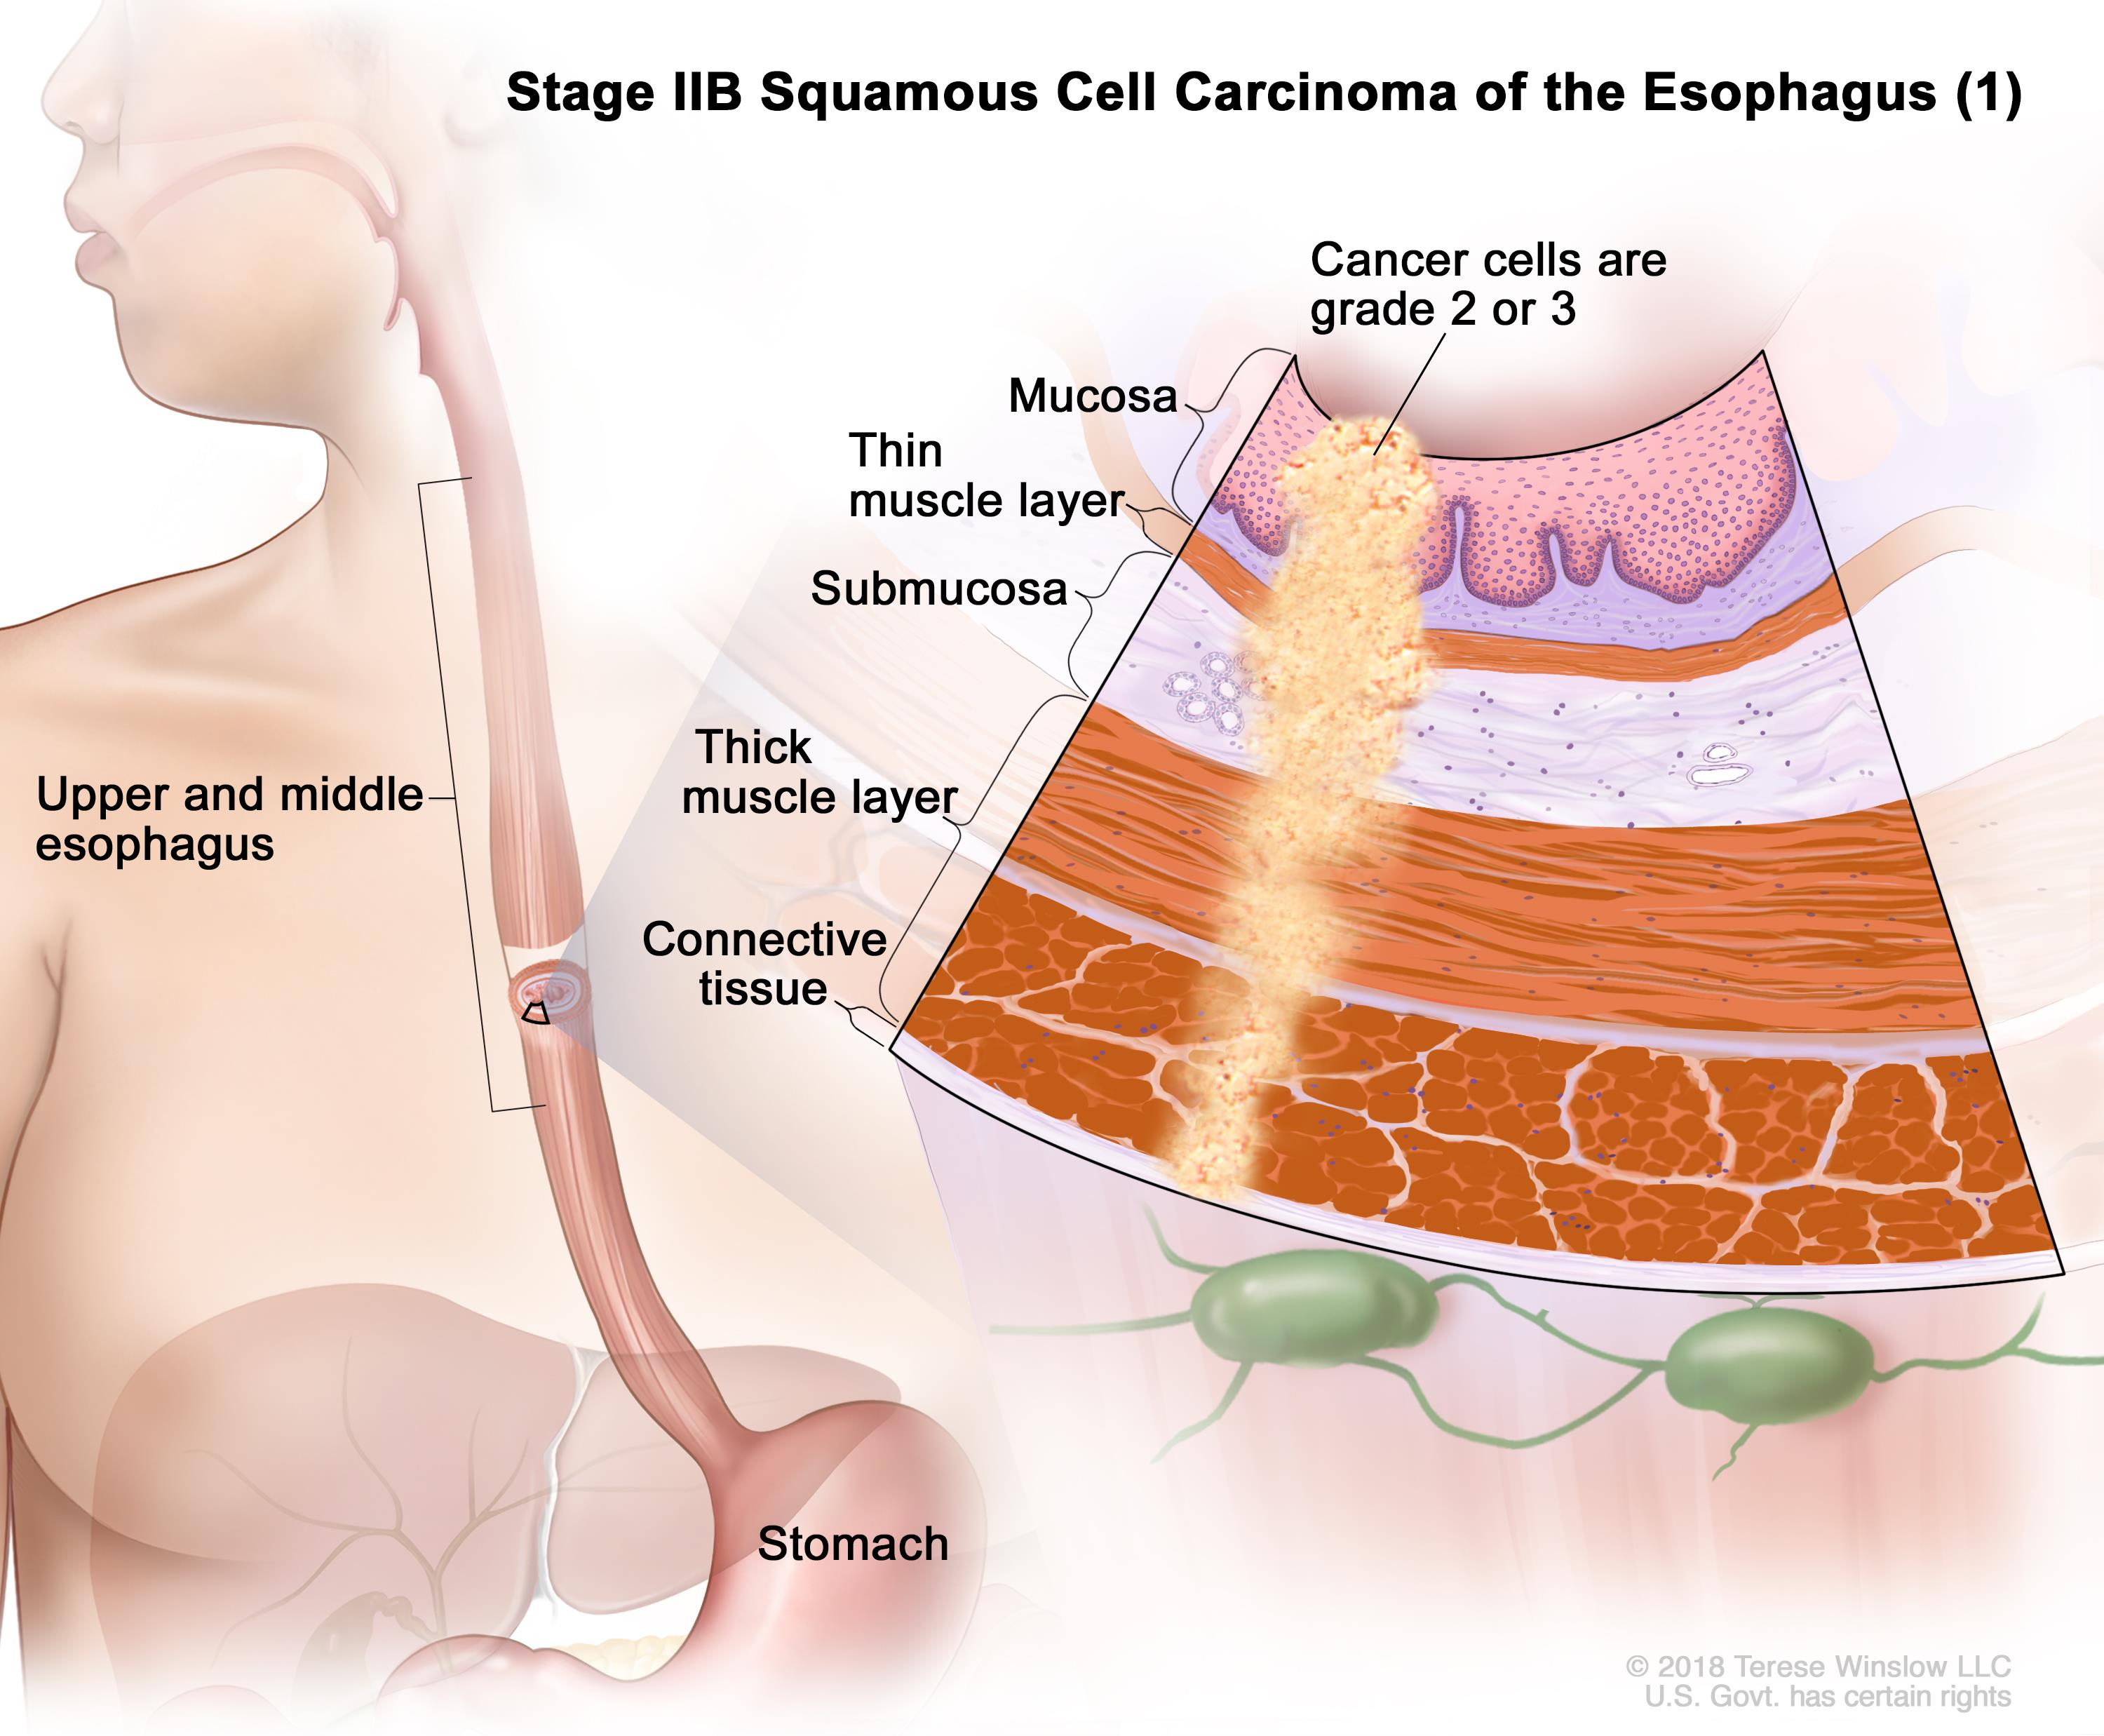 Stage IIB squamous cell cancer of the esophagus; drawing shows the esophagus and stomach. A two-panel inset shows the layers of the esophagus wall: the mucosa, submucosa, muscle, and connective tissue layers. The left panel shows cancer in the mucosa, submucosa, muscle, and connective tissue layers. The right panel shows cancer in the mucosa, submucosa, and muscle layers and in 1 lymph node.